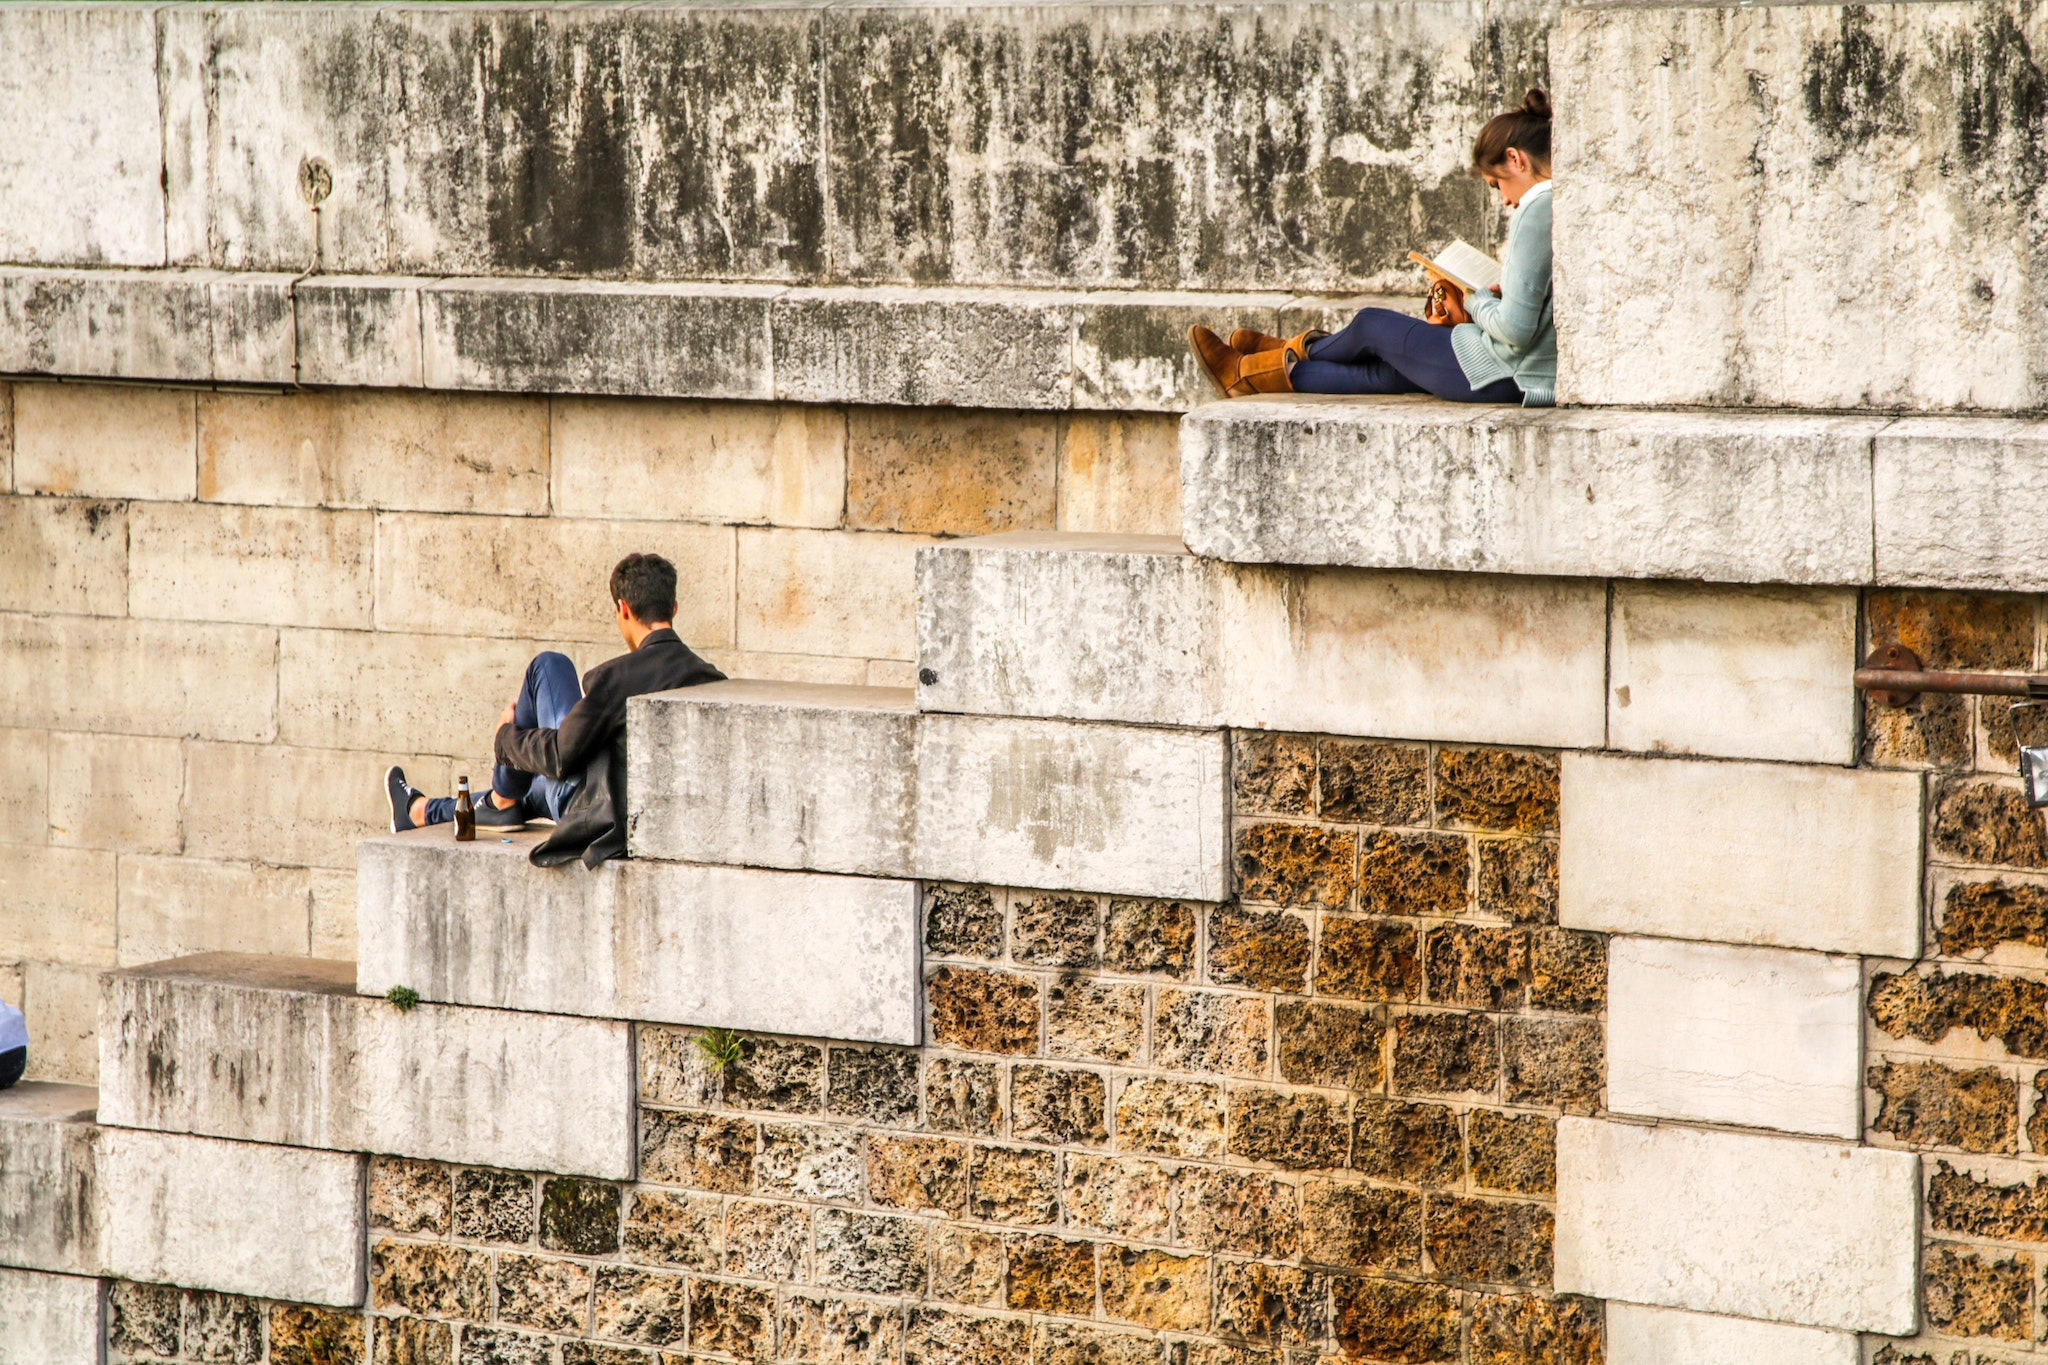 People are seen sitting on large stone steps near the Seine River in Paris; A man sits holding his leg and a woman a few steps above sits while reading a book.